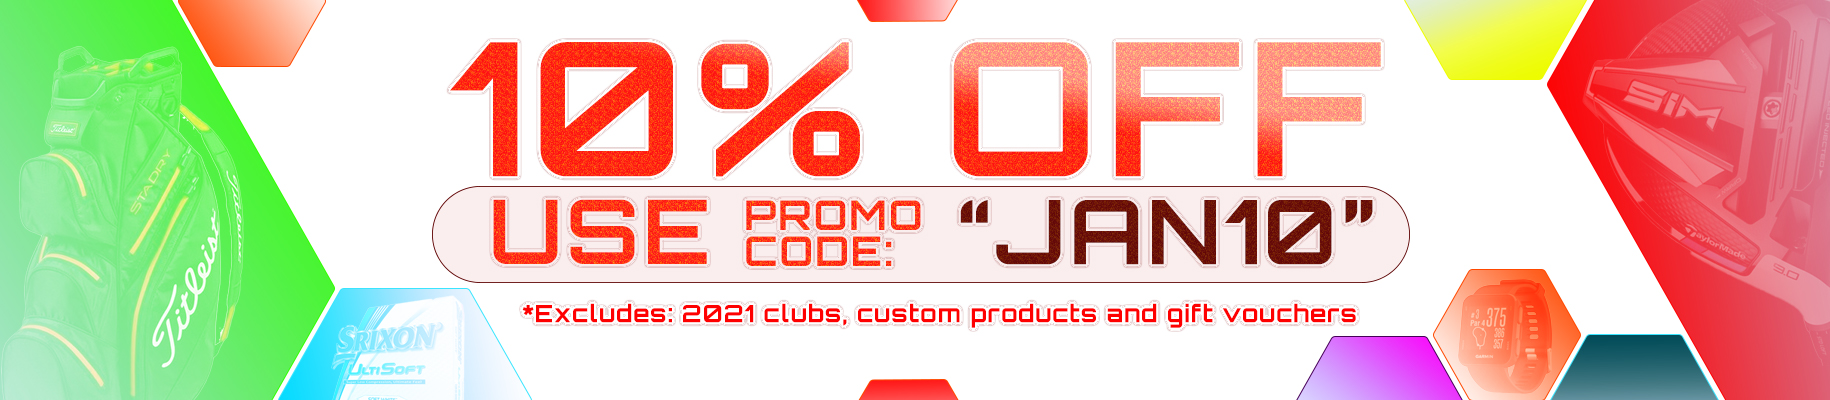 10% off Everything - promo code: Jan10